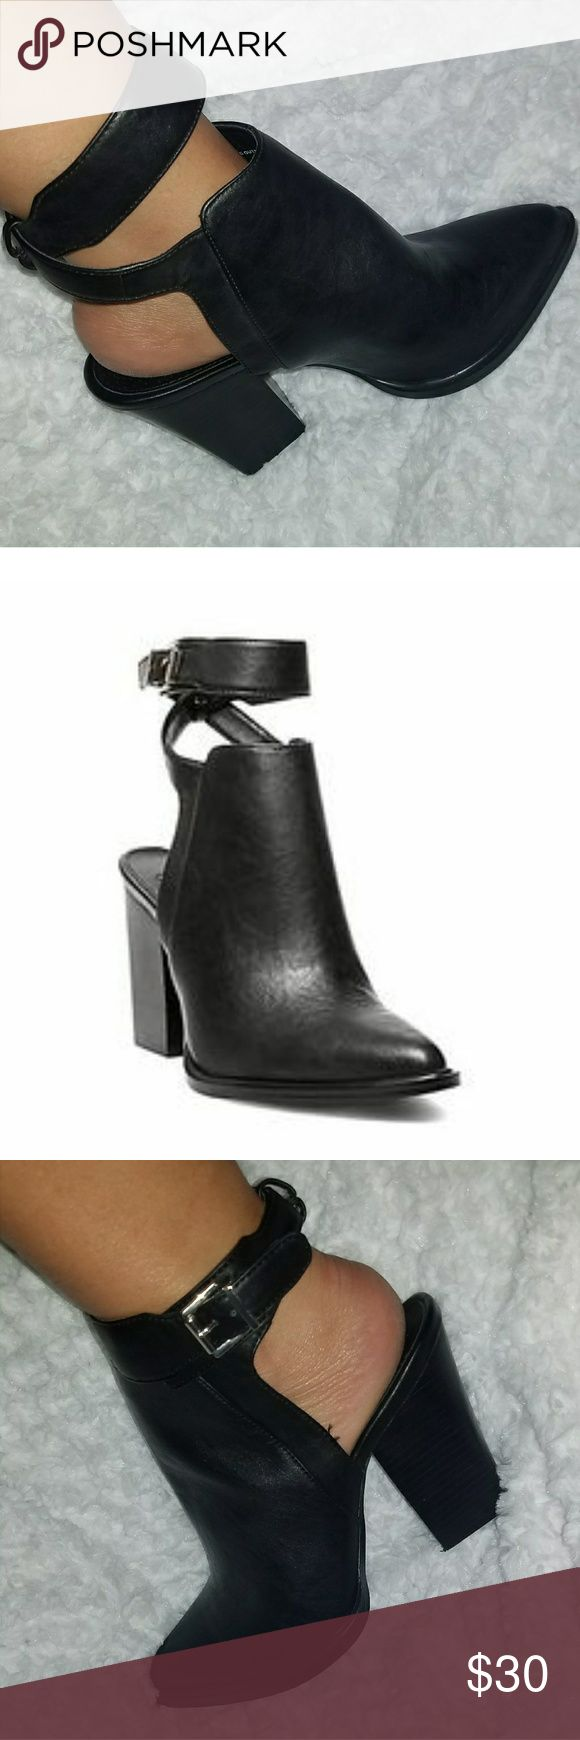 Steve Madden Madyy cutout wrap around boots Beautiful and definitely a statemebt piece! Such a unique look!  Please feel free to make an offer on any of my items! Extra discount on bundles! Steve Madden Shoes Ankle Boots & Booties